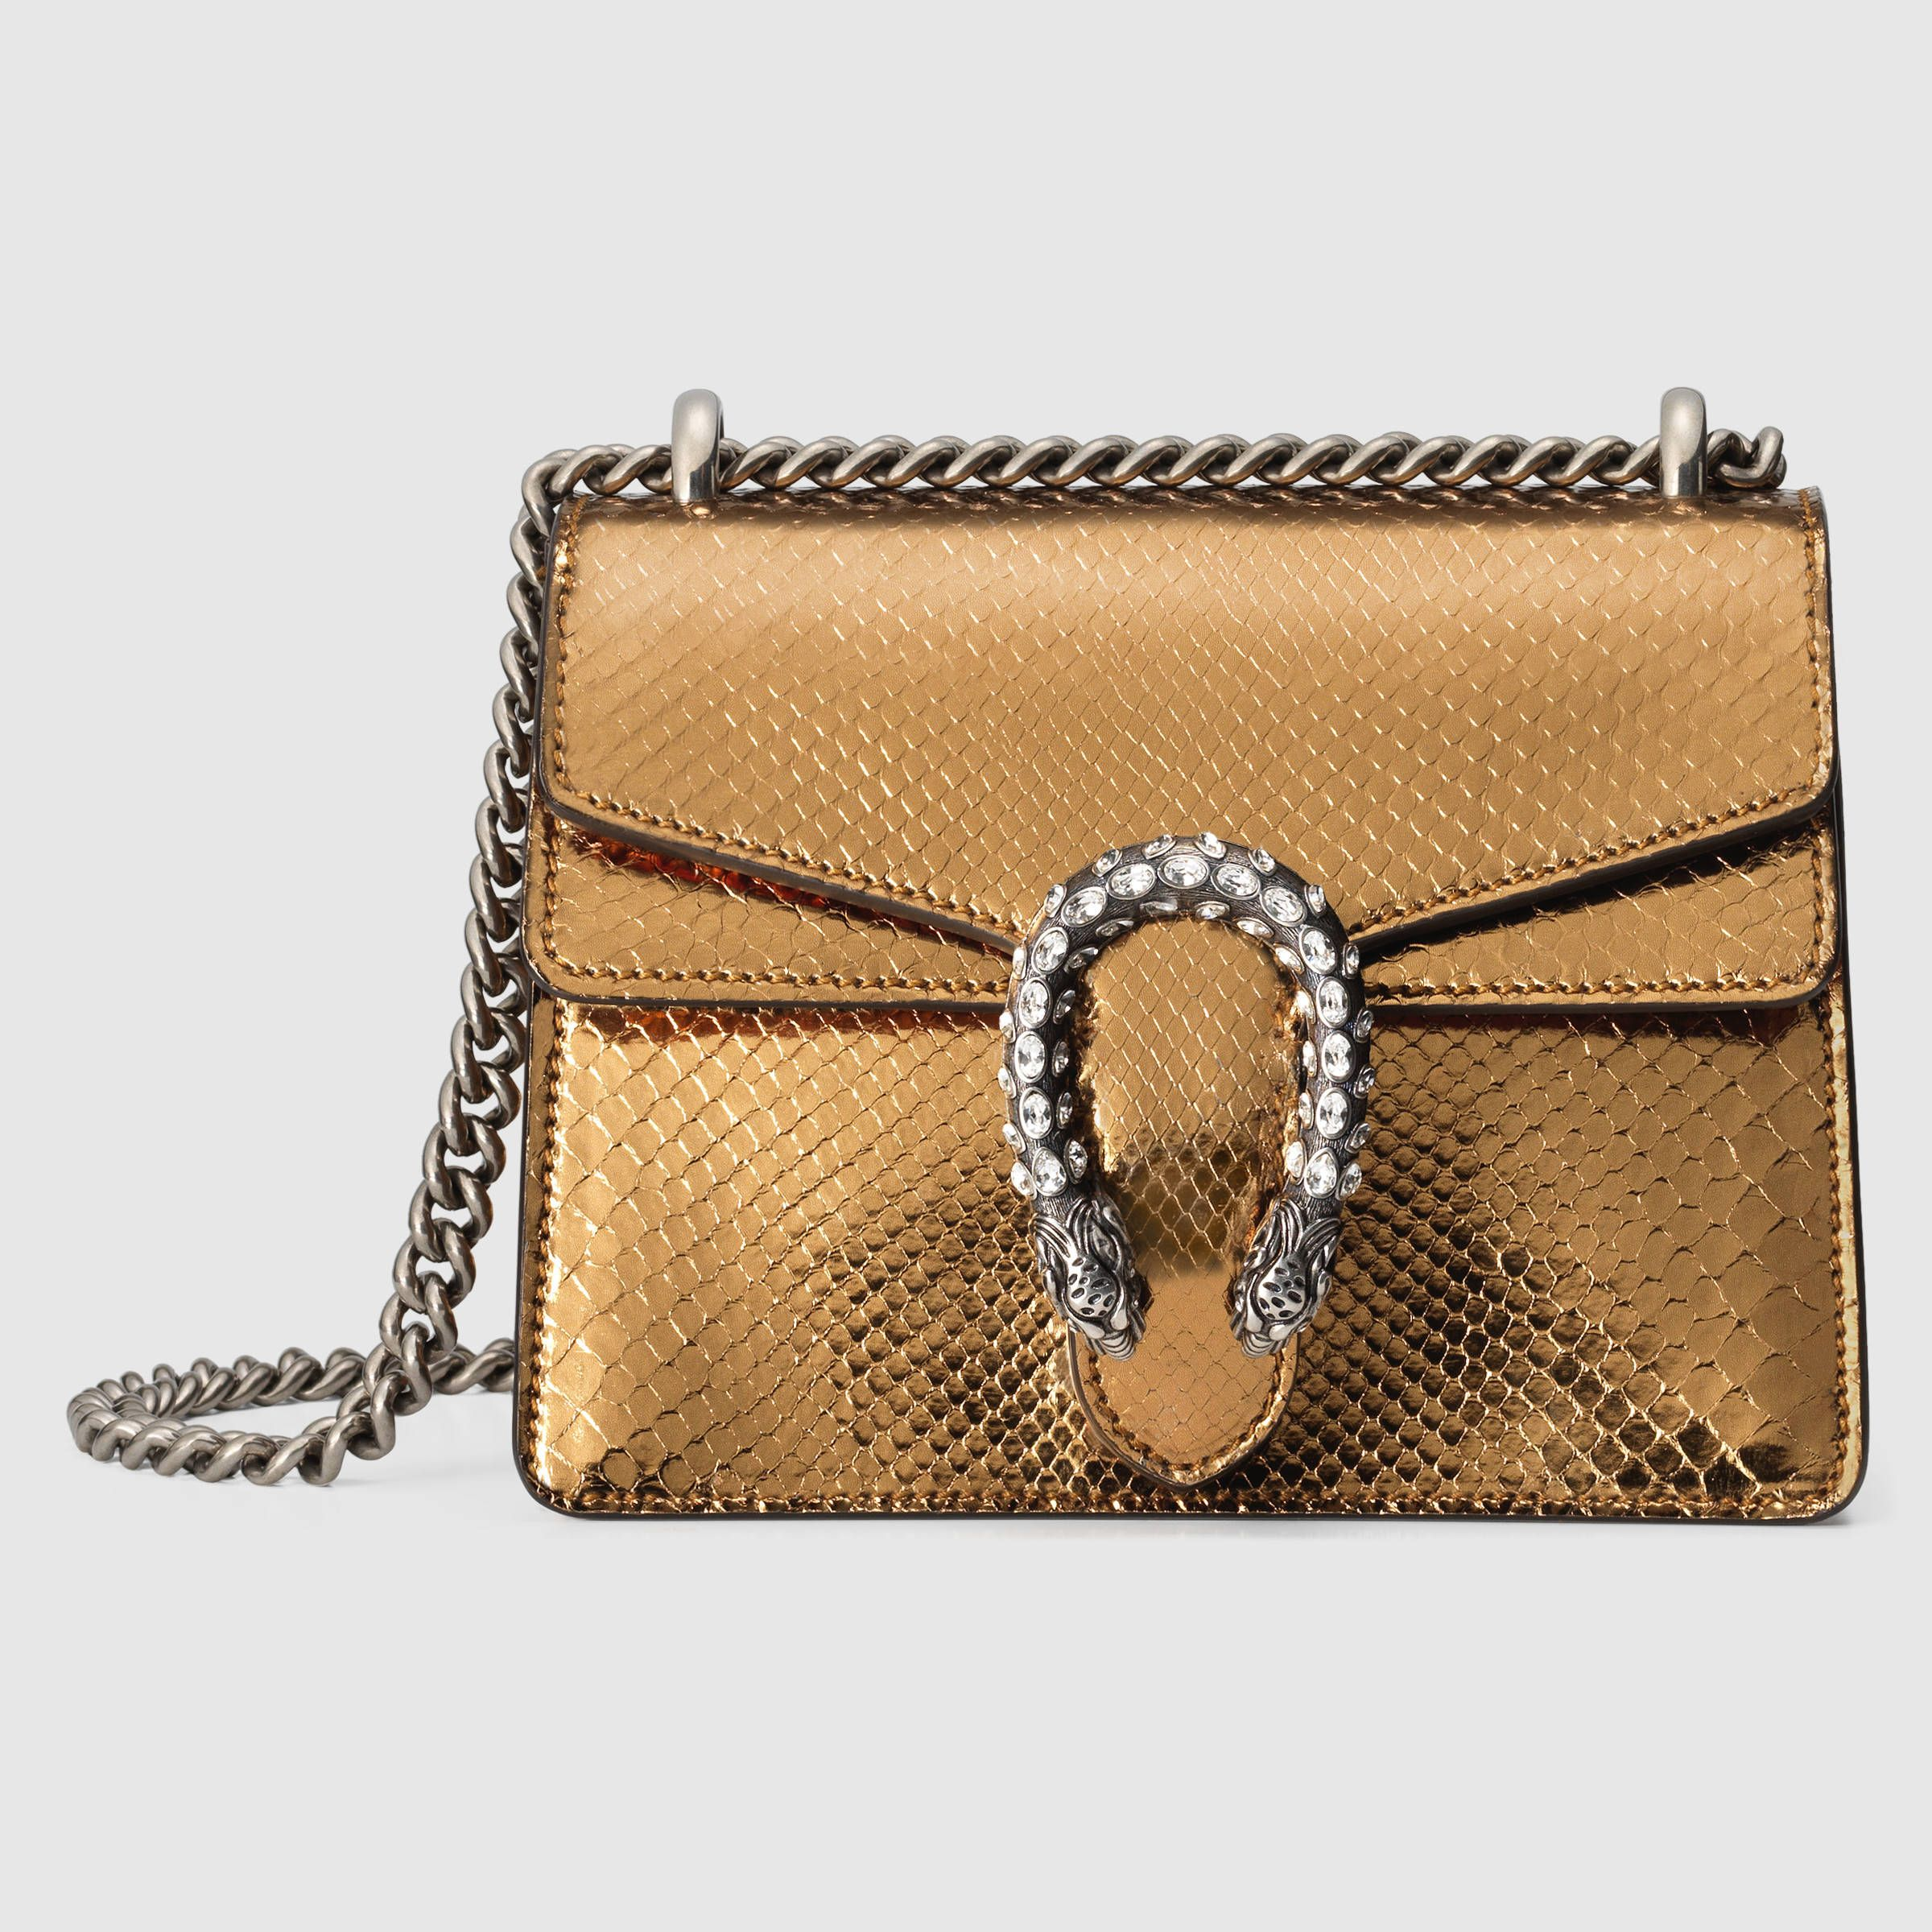 Gucci Dionysus gold python mini shoulder bag with horse shoe for luck.  Enjoy RUSHWORLD boards c9687a9f82be